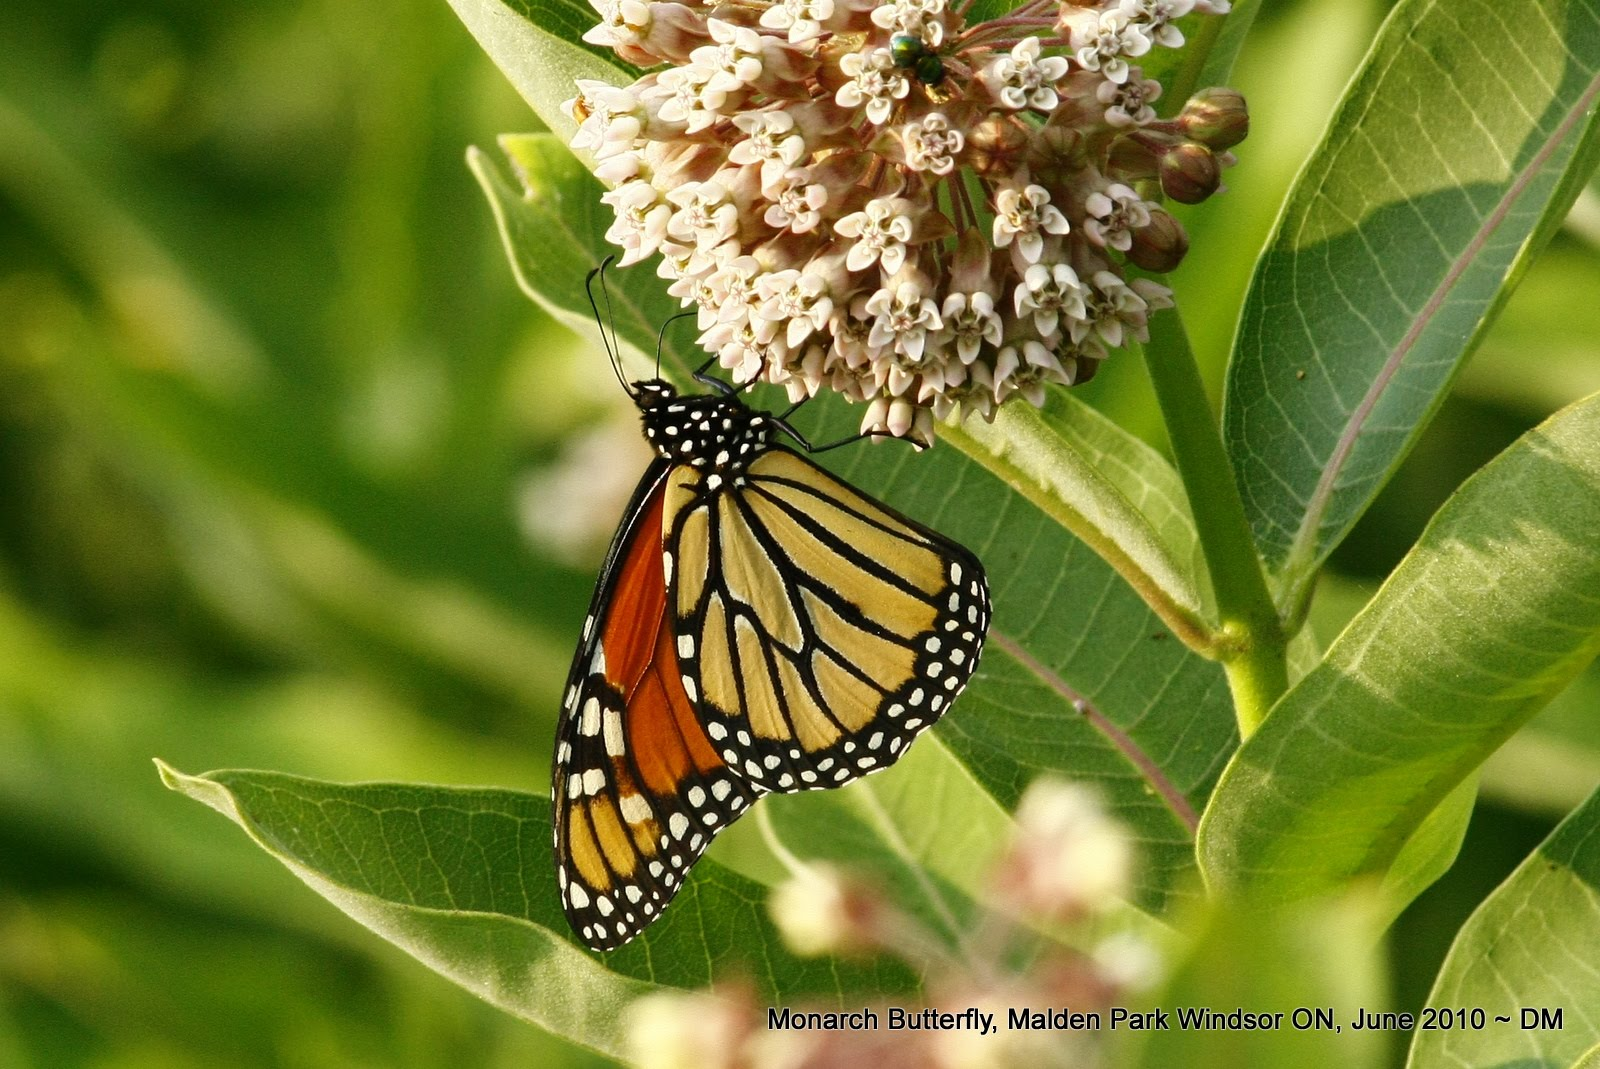 monarch butterflies coevolution with milkweed essay Free essay: the monarch butterfly, as known as danaus plexippus, is often called the milkweed butterfly because its larvae eat the milkweed plant second, the milkweed plant in which the caterpillar eats has toxins which make the wings of the butterfly distasteful to predators.